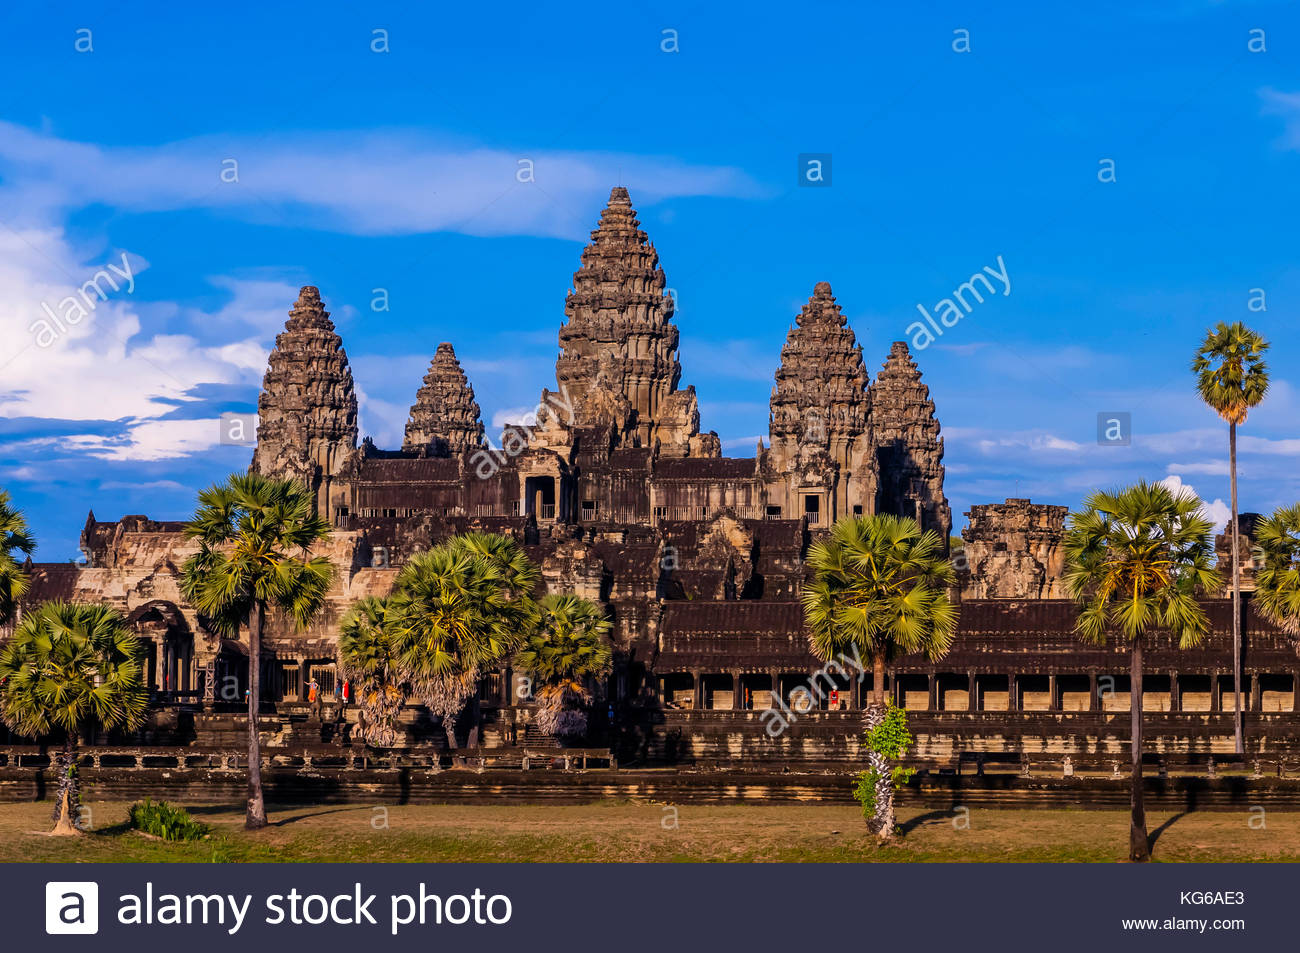 Angkor Wat, the largest religious monument in the world (means City which is a Temple); Cambodia. Stock Photo